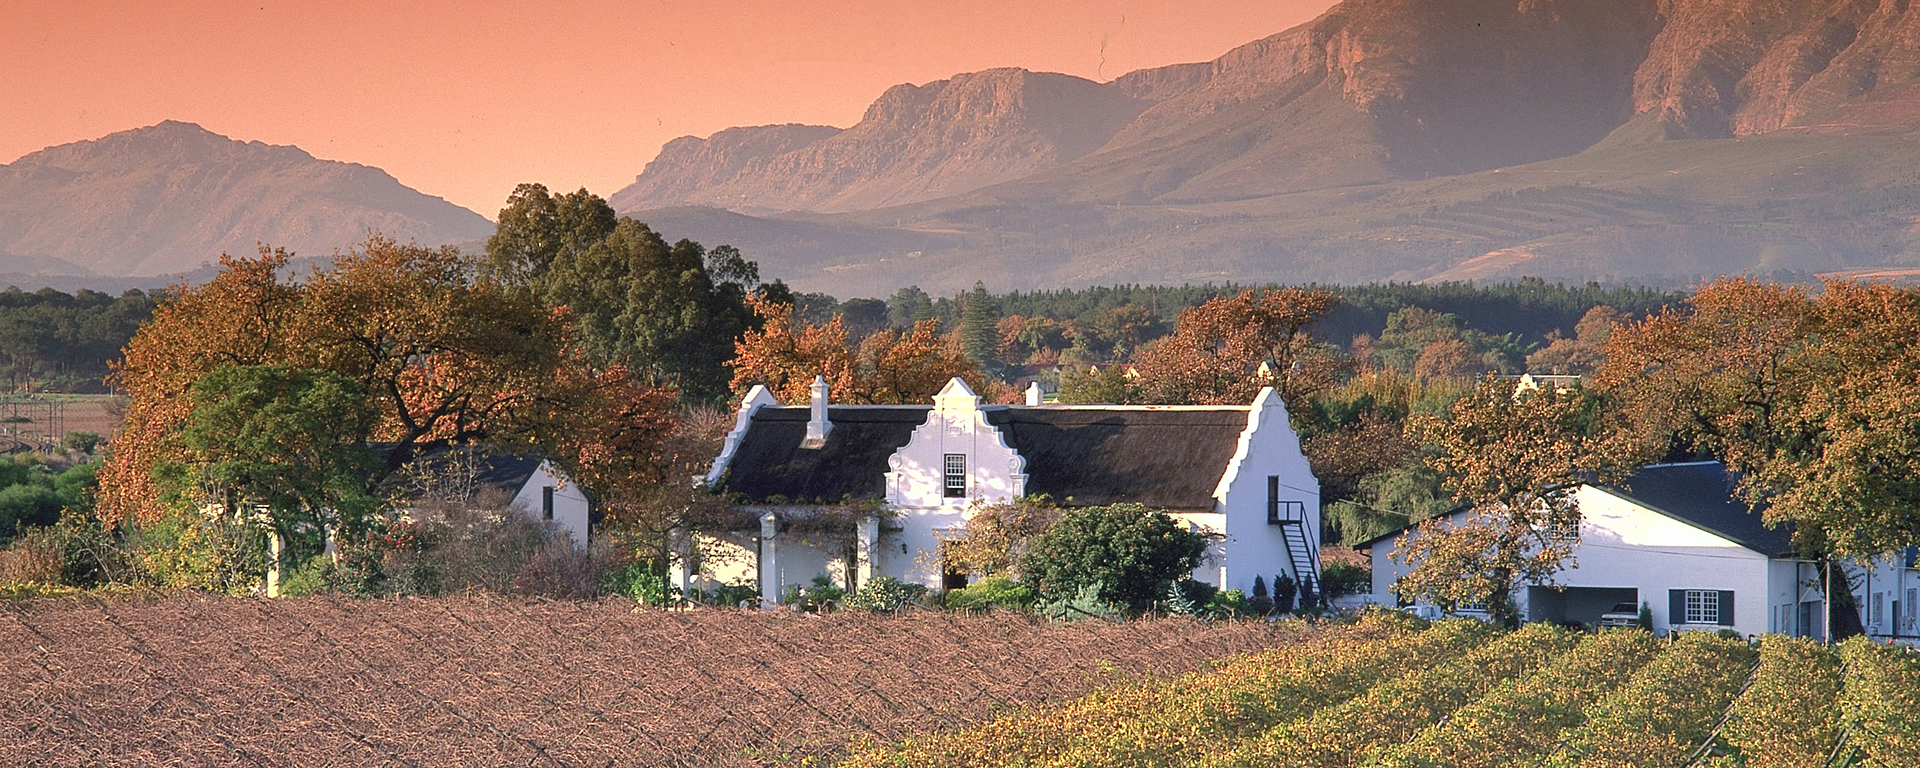 The Cape Winelands combine history, food, great wine & breathtaking scenery about an hour's drive from Cape Town.